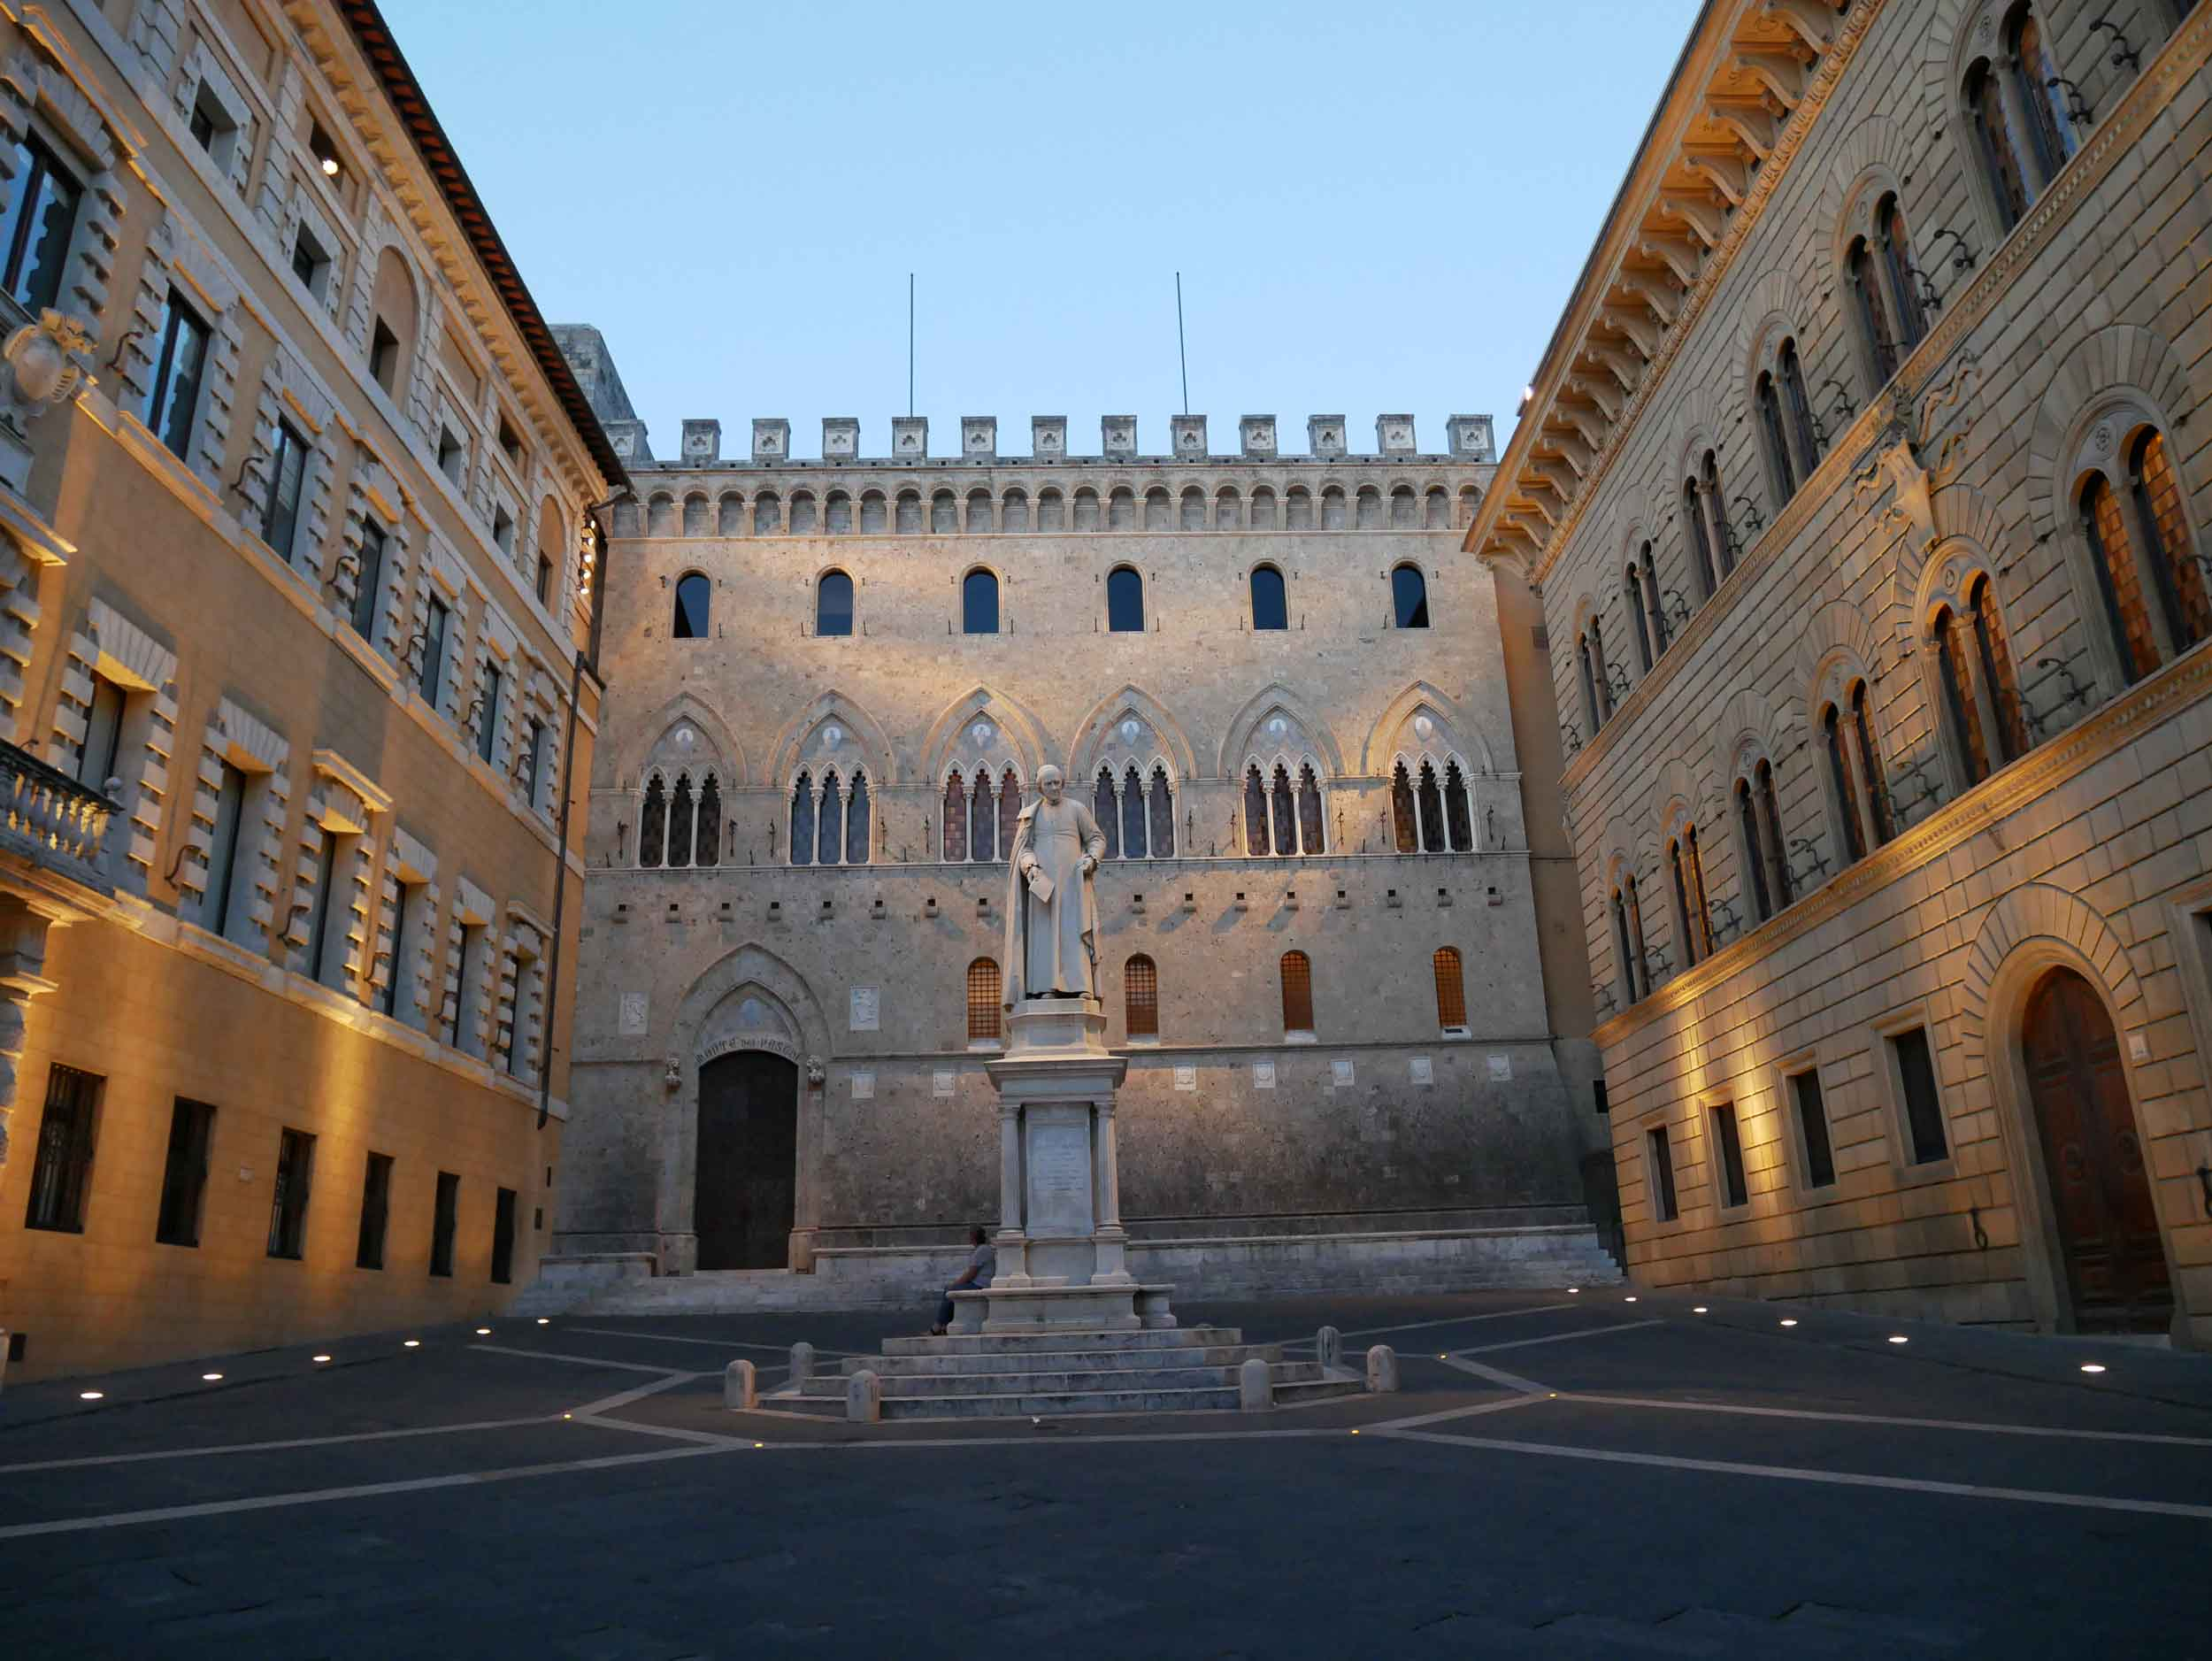 As dusk began to settle, pretty Siena came to life across it's little squares and many statues.